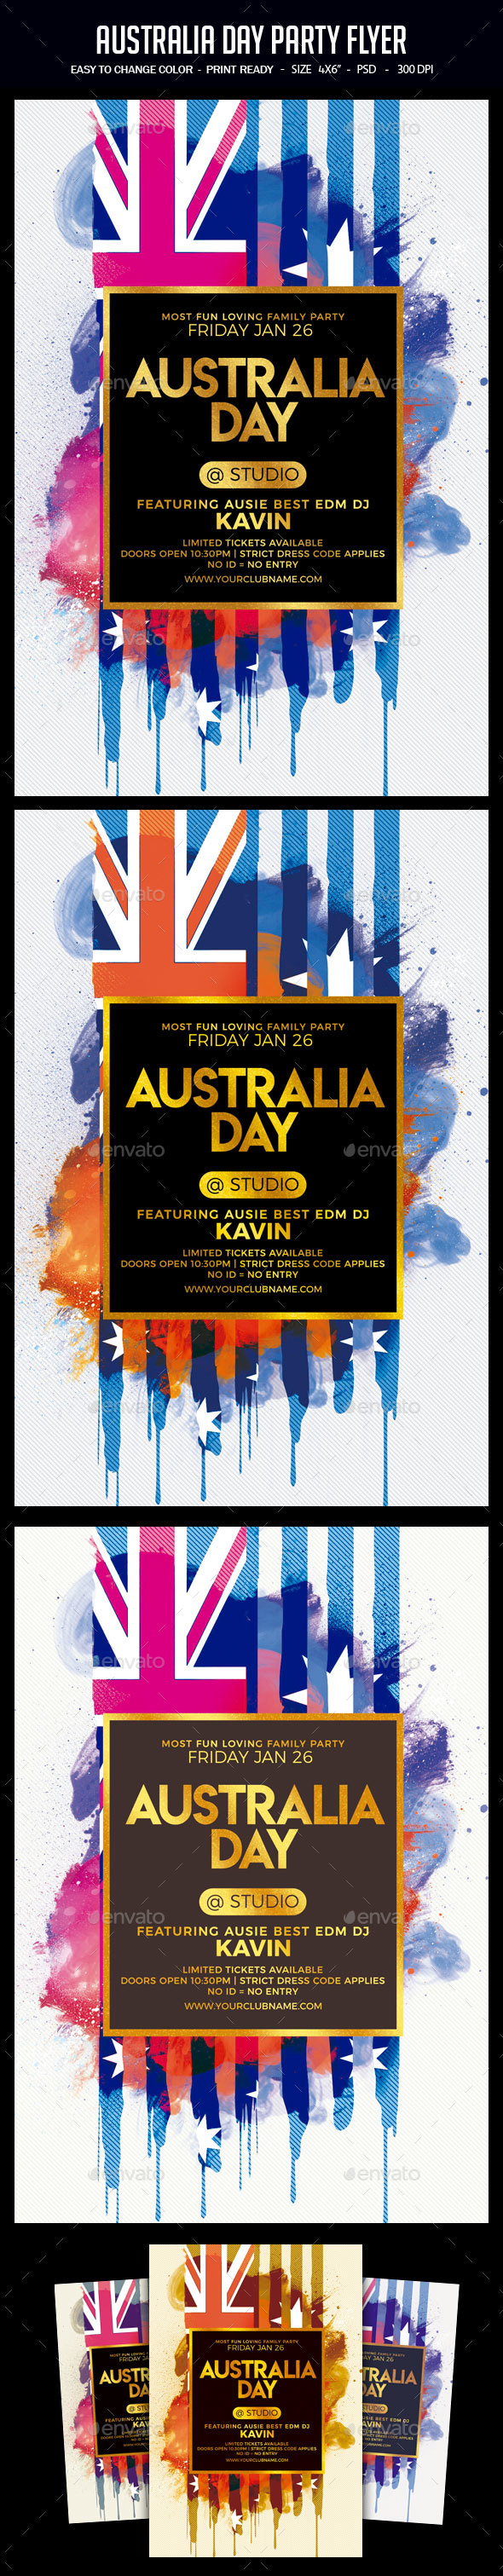 Australia Day Party Flyer - Clubs & Parties Events